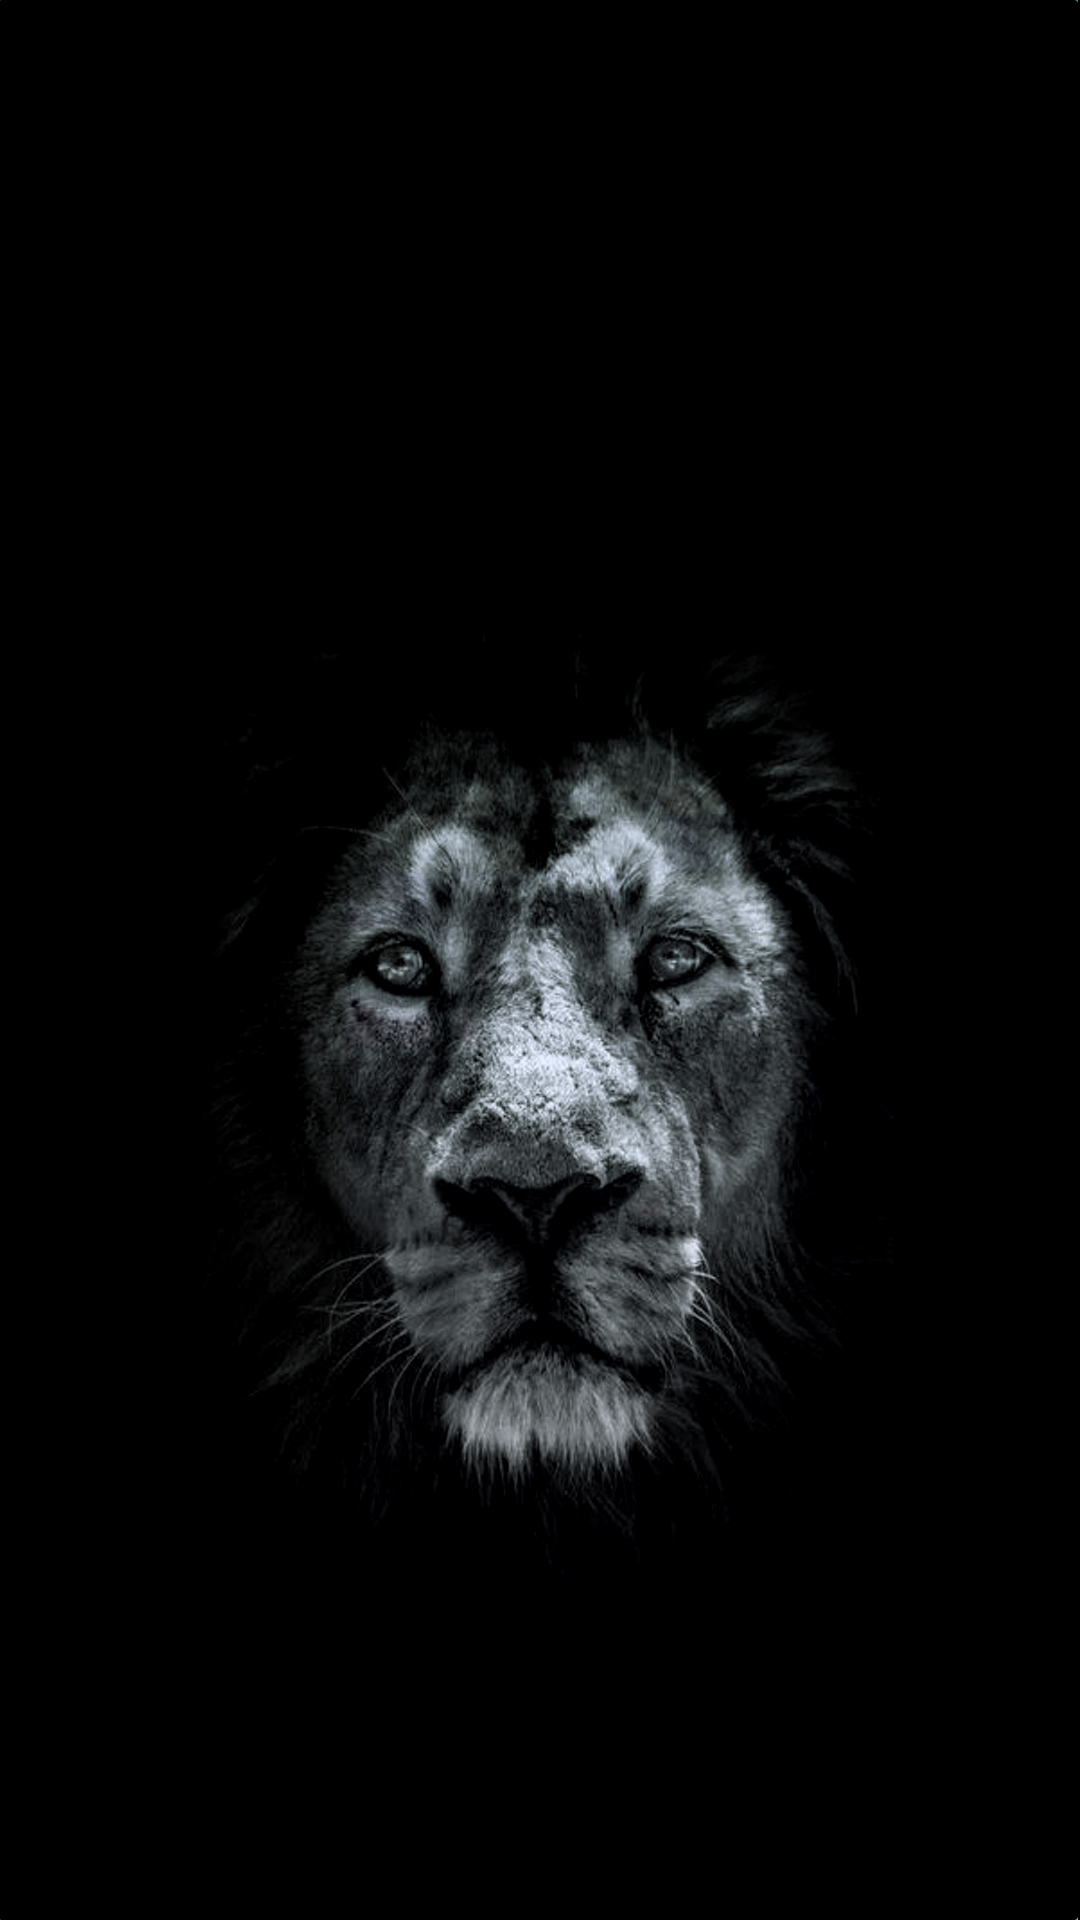 free hd lion phone wallpaper1076